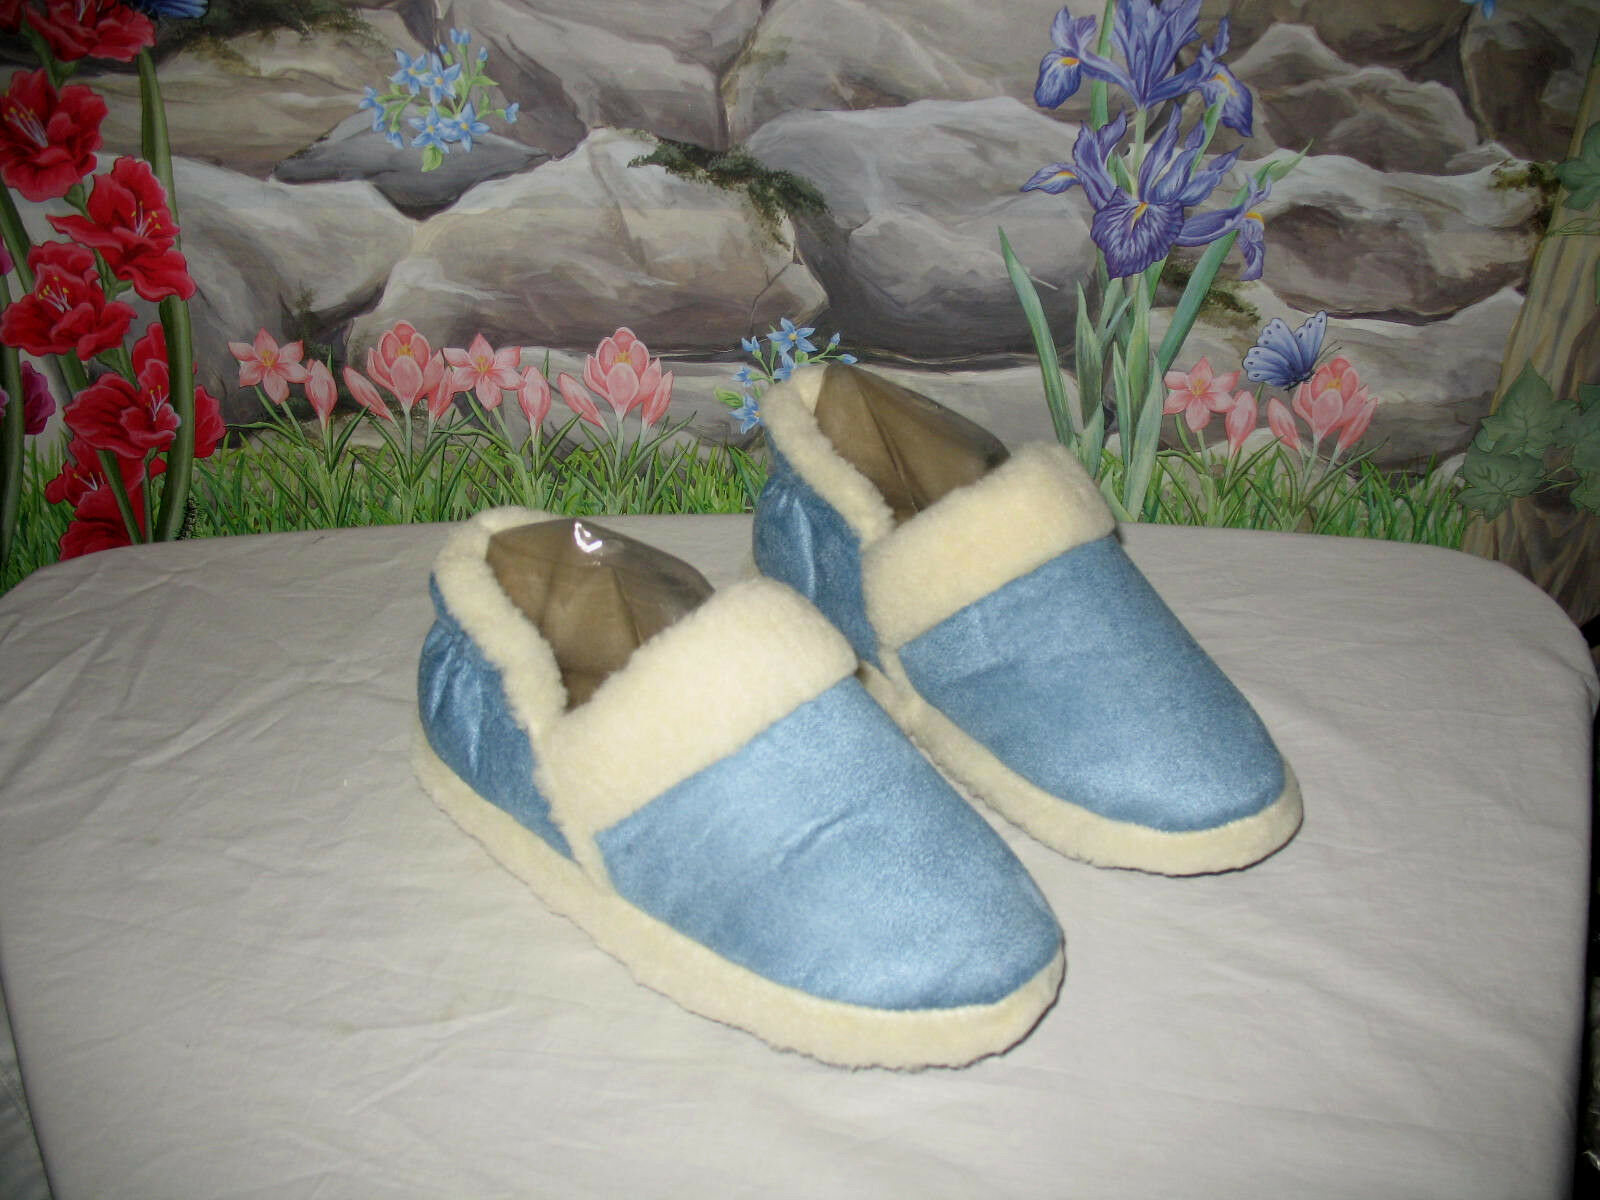 New Blue Micro Suede Bootie Slippers w Fleece Lining sz XL fits 9.5 -10.5